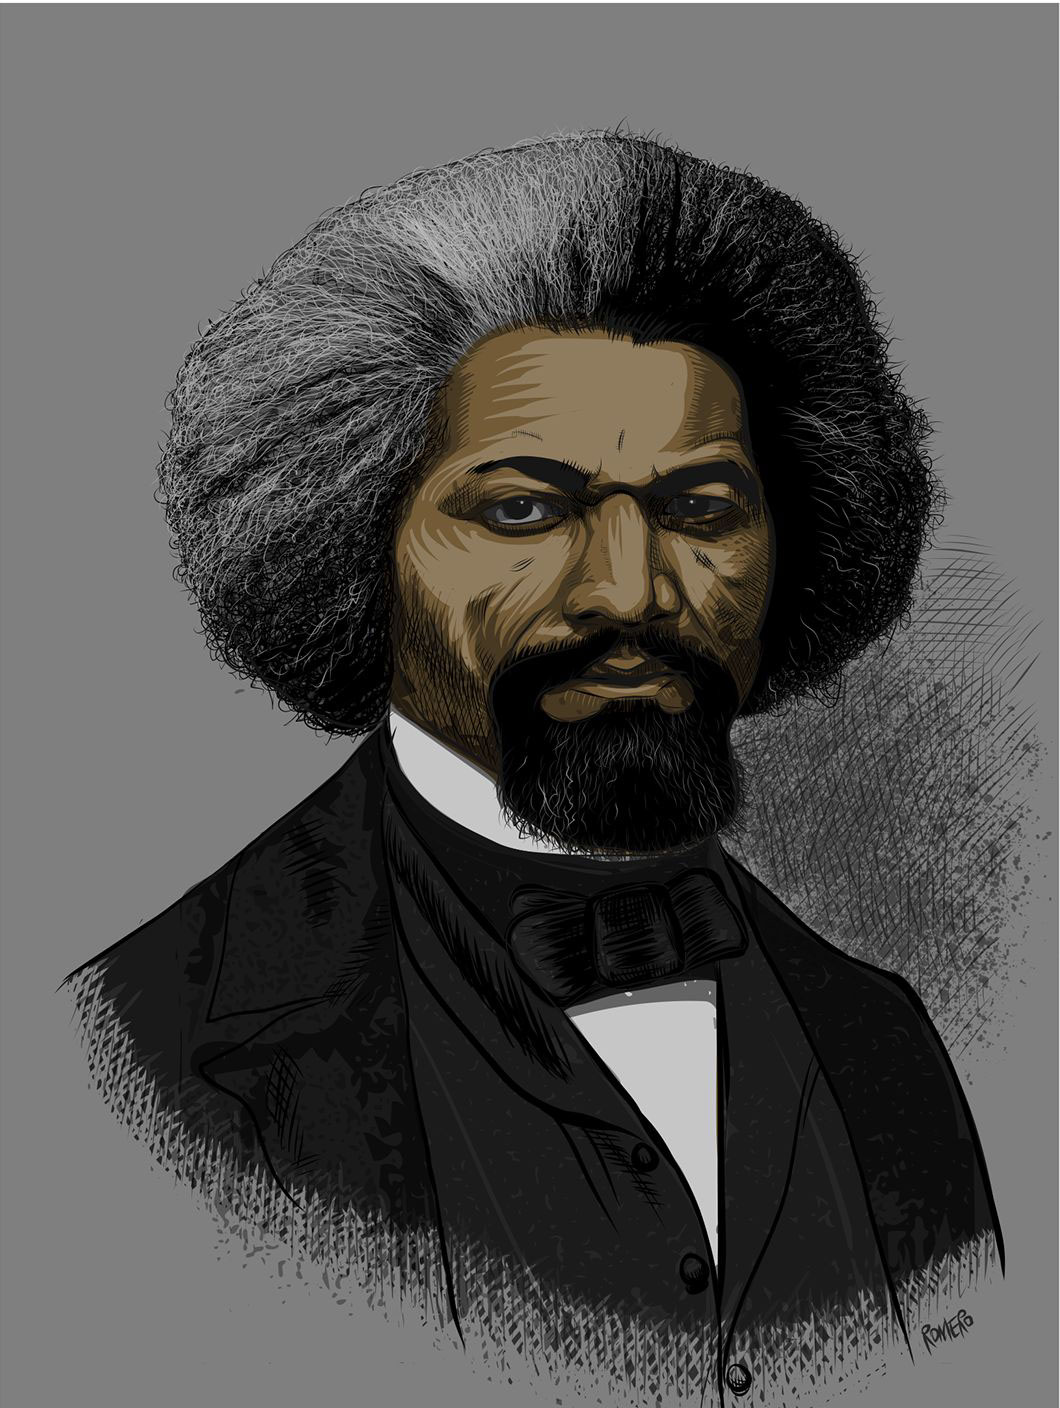 frederick douglass story page New york - more than a century after his death, frederick douglass and july 4 remain profoundly intertwined douglass was one of the greatest public speakers of the civil war era, a conscience.